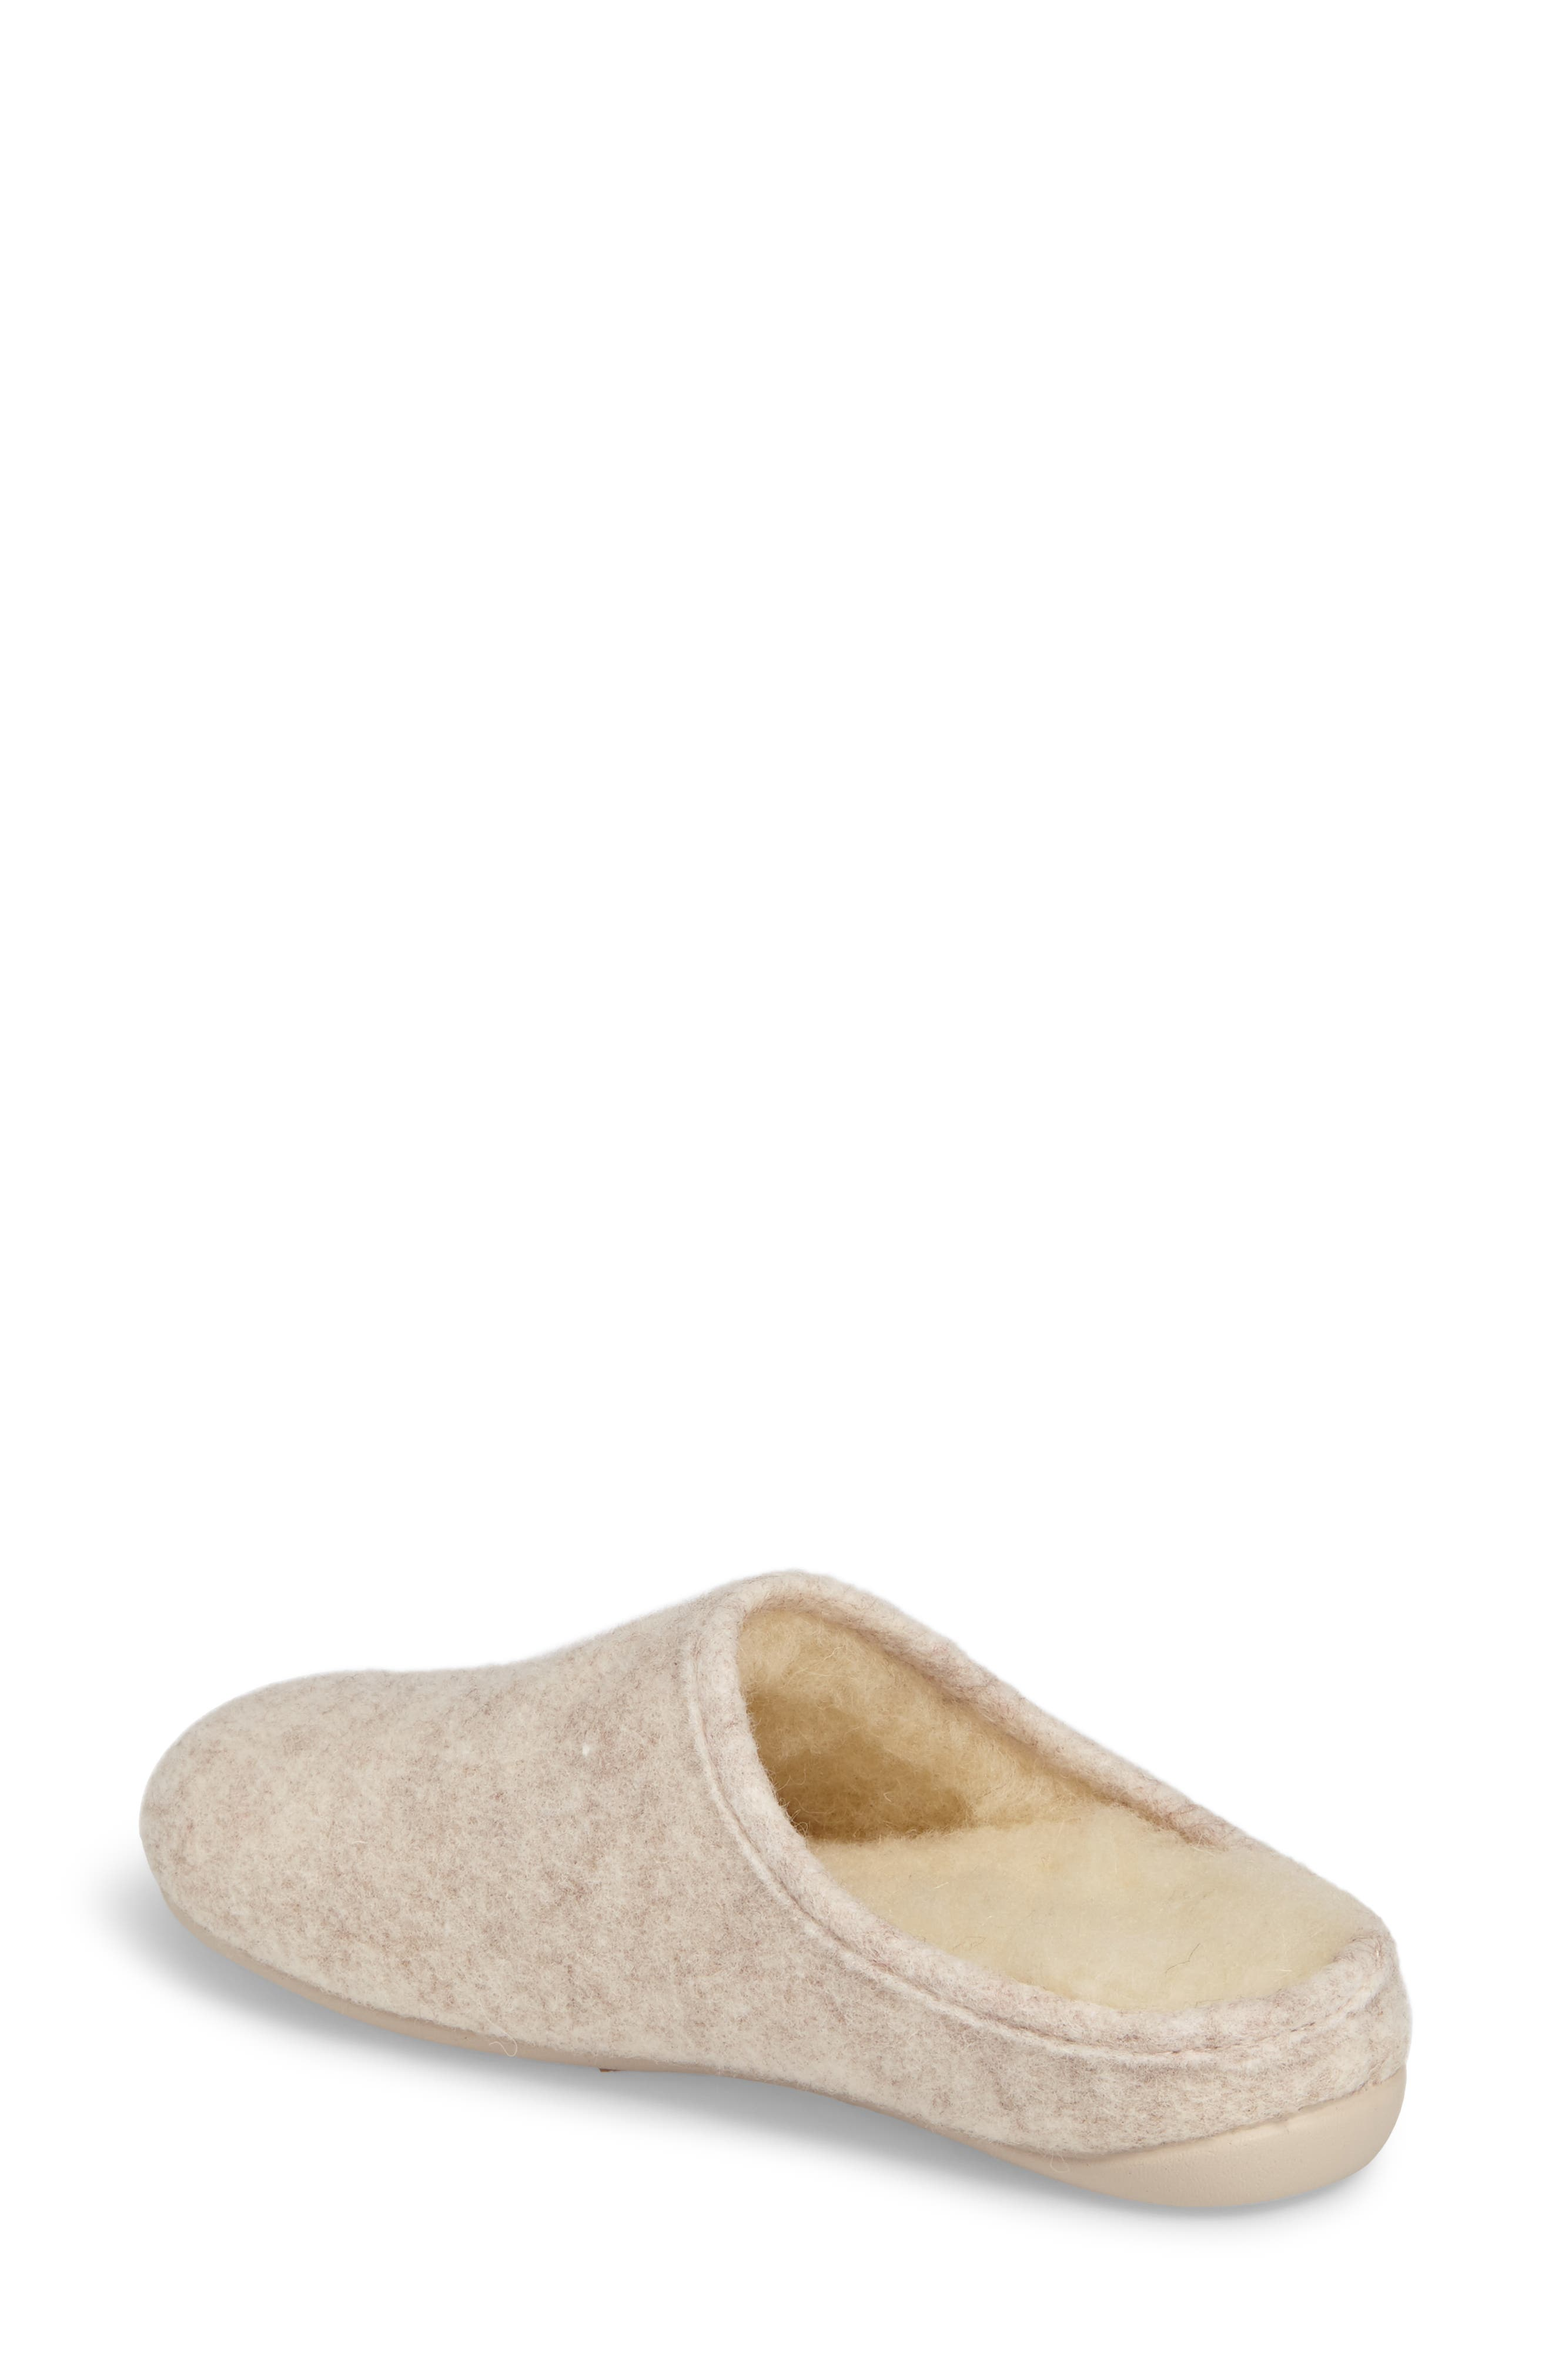 Emma Slipper,                             Alternate thumbnail 2, color,                             Cream Fabric